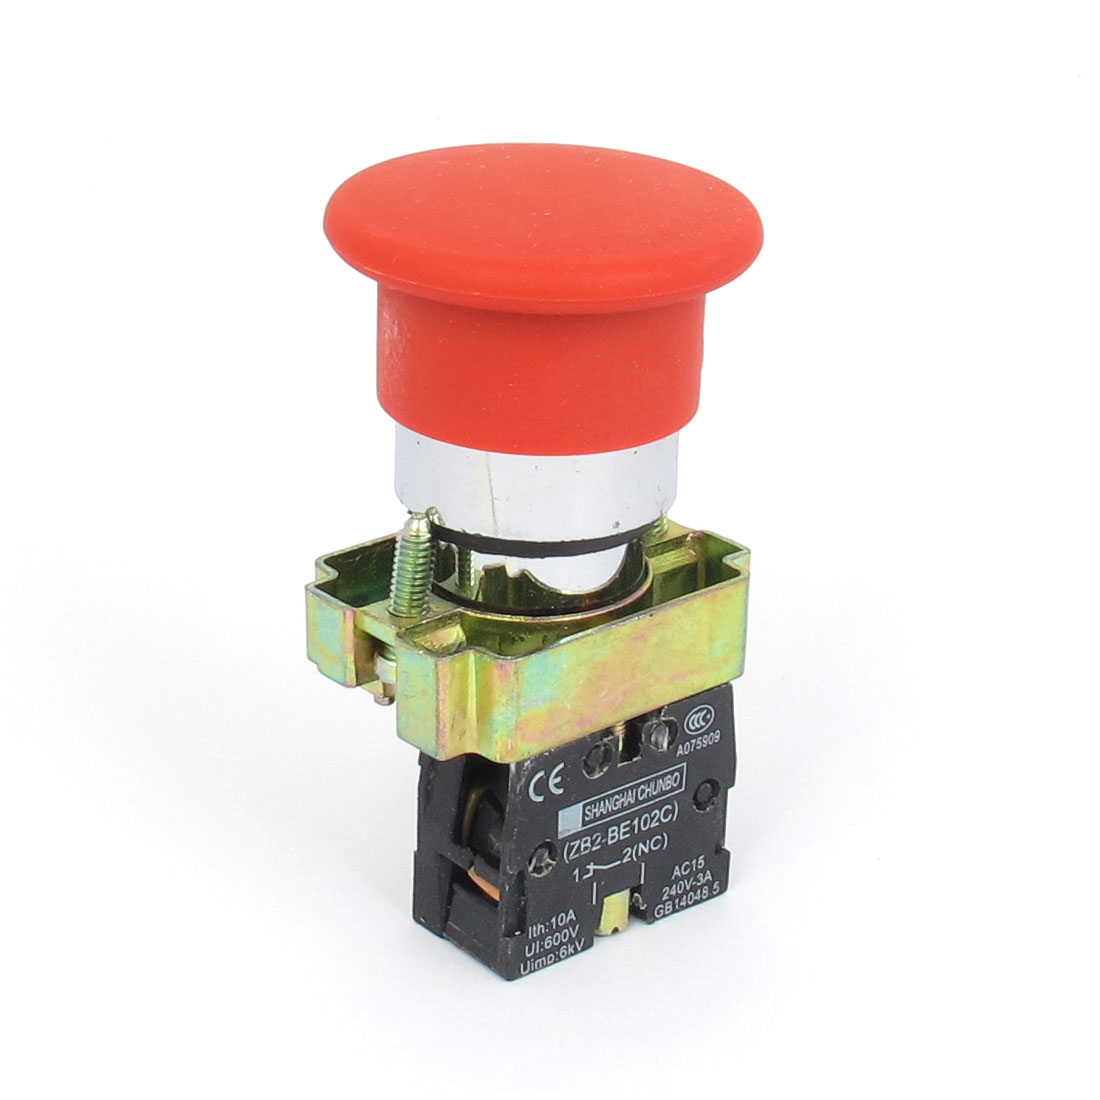 415V 10A 22mm Panel Cutout Dia Red Mushroomhead 1NC Momentary Button Switch